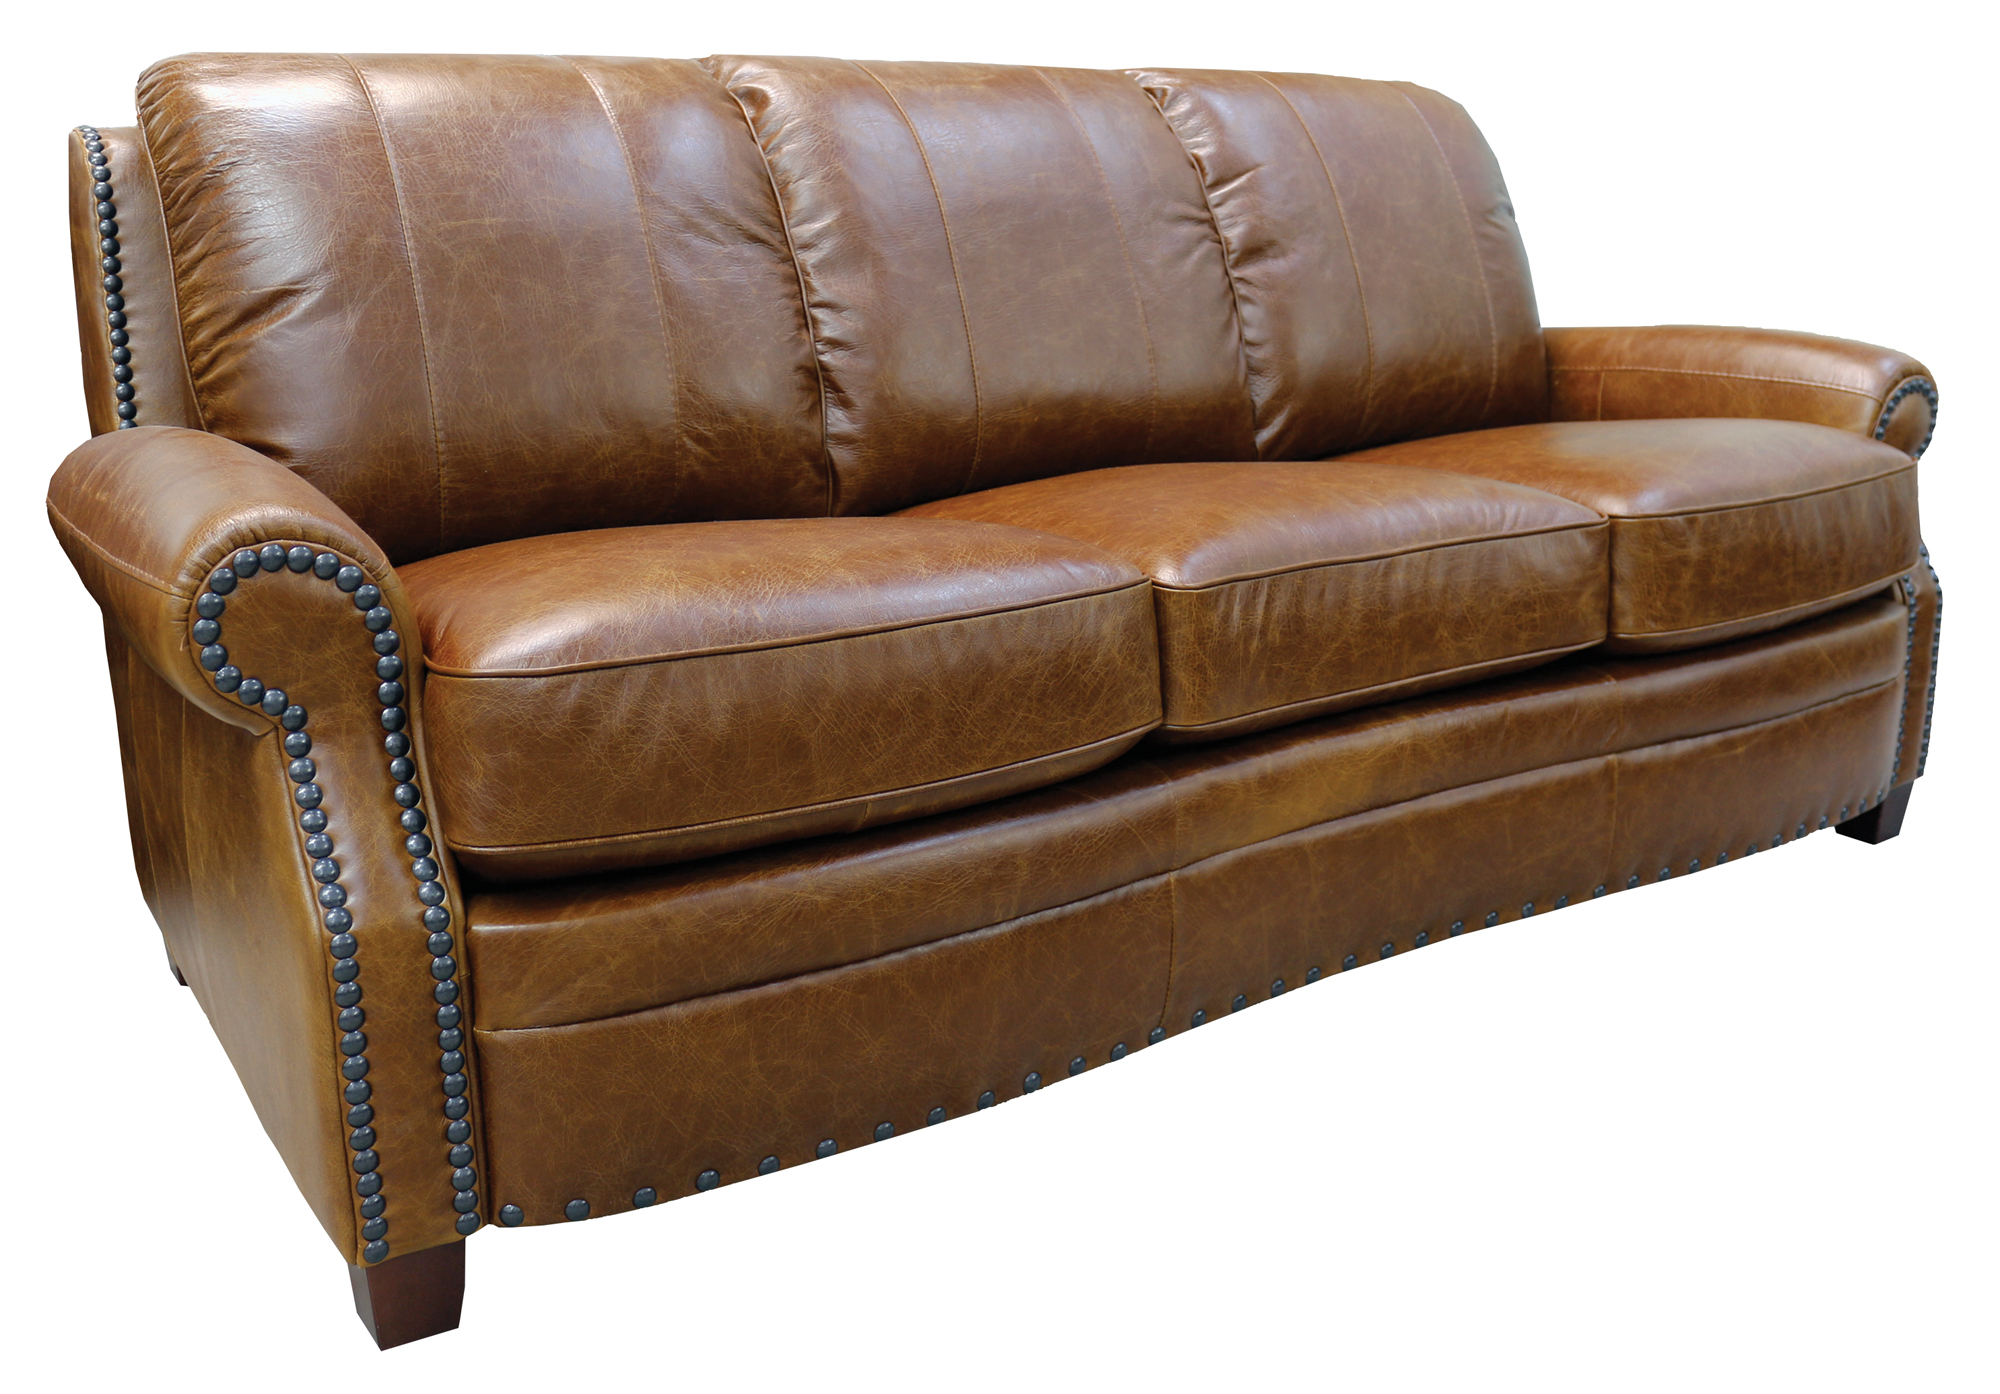 Ashton Group Luke Leather Furniture ~ Brown Leather Sofa With Studs